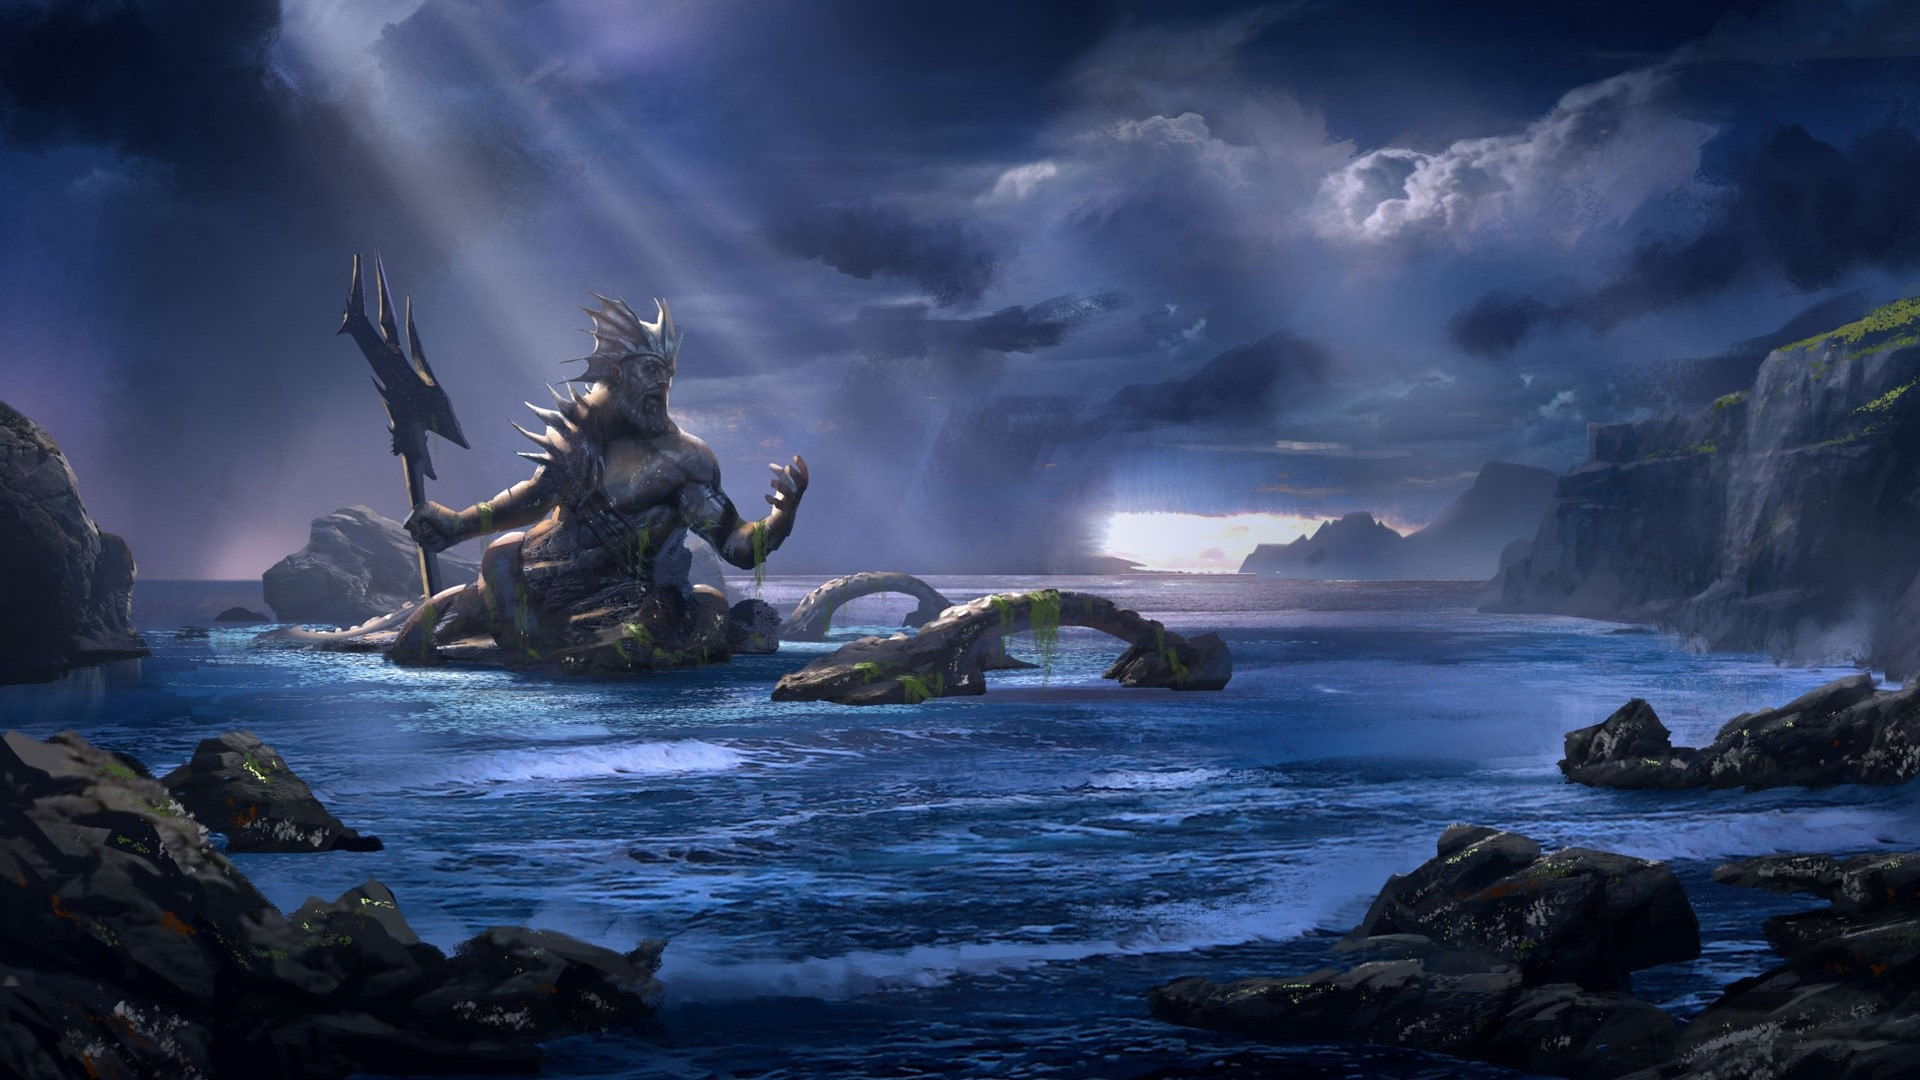 Wallpaper Poseidon in God of War Ascension